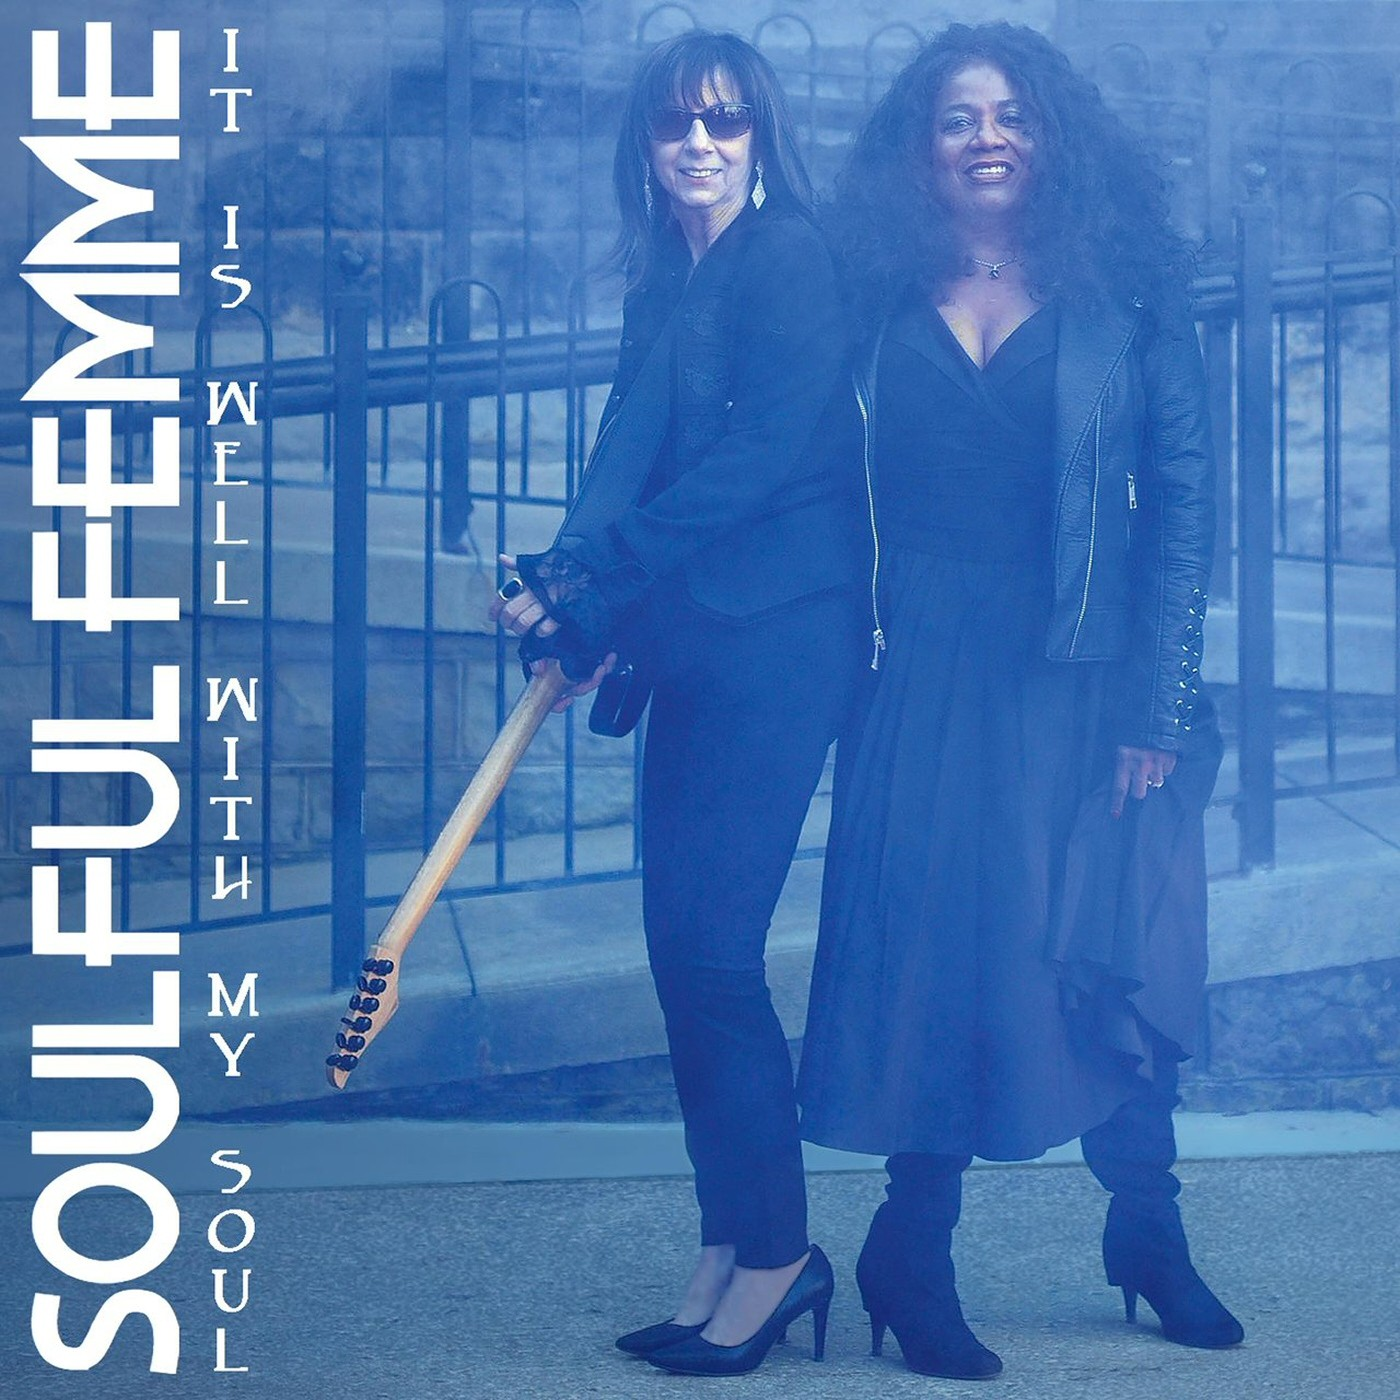 Soulful Femme - It Is Well With My Soul